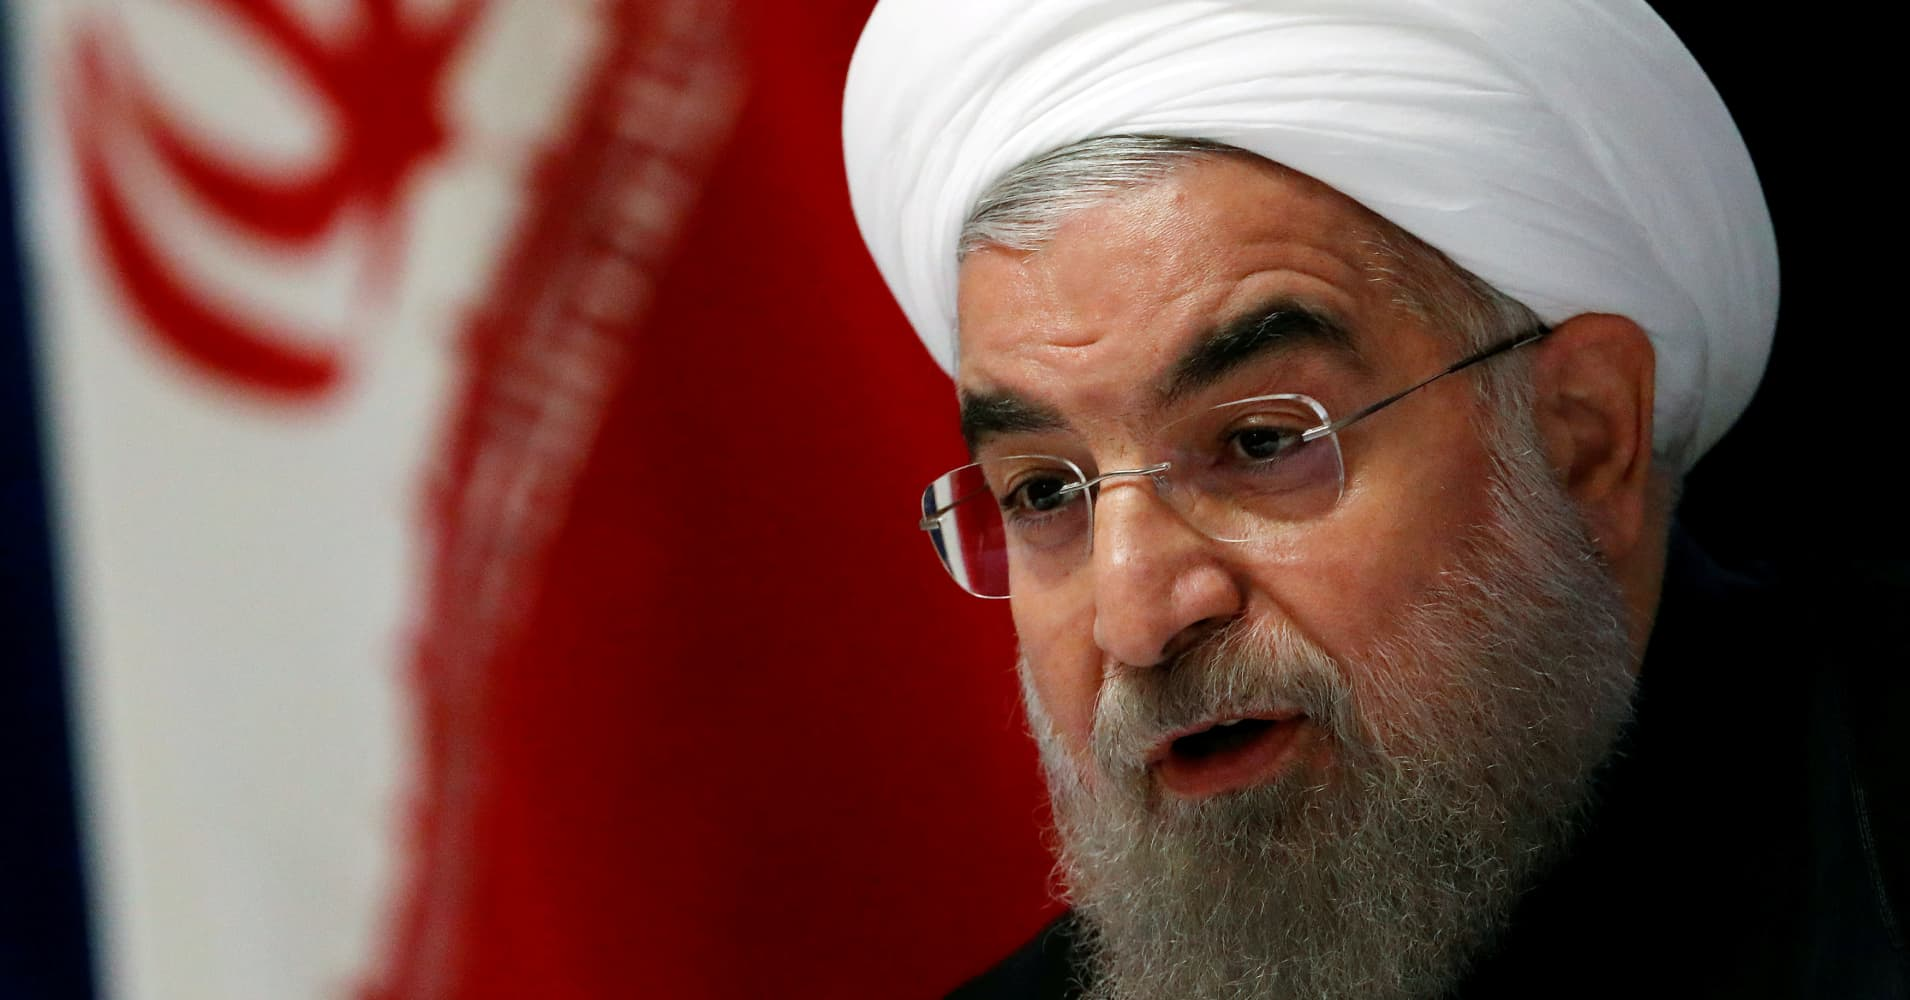 Iran's president said the U.S. had failed to undermine a nuclear deal between Tehran and major powers, state television reported.